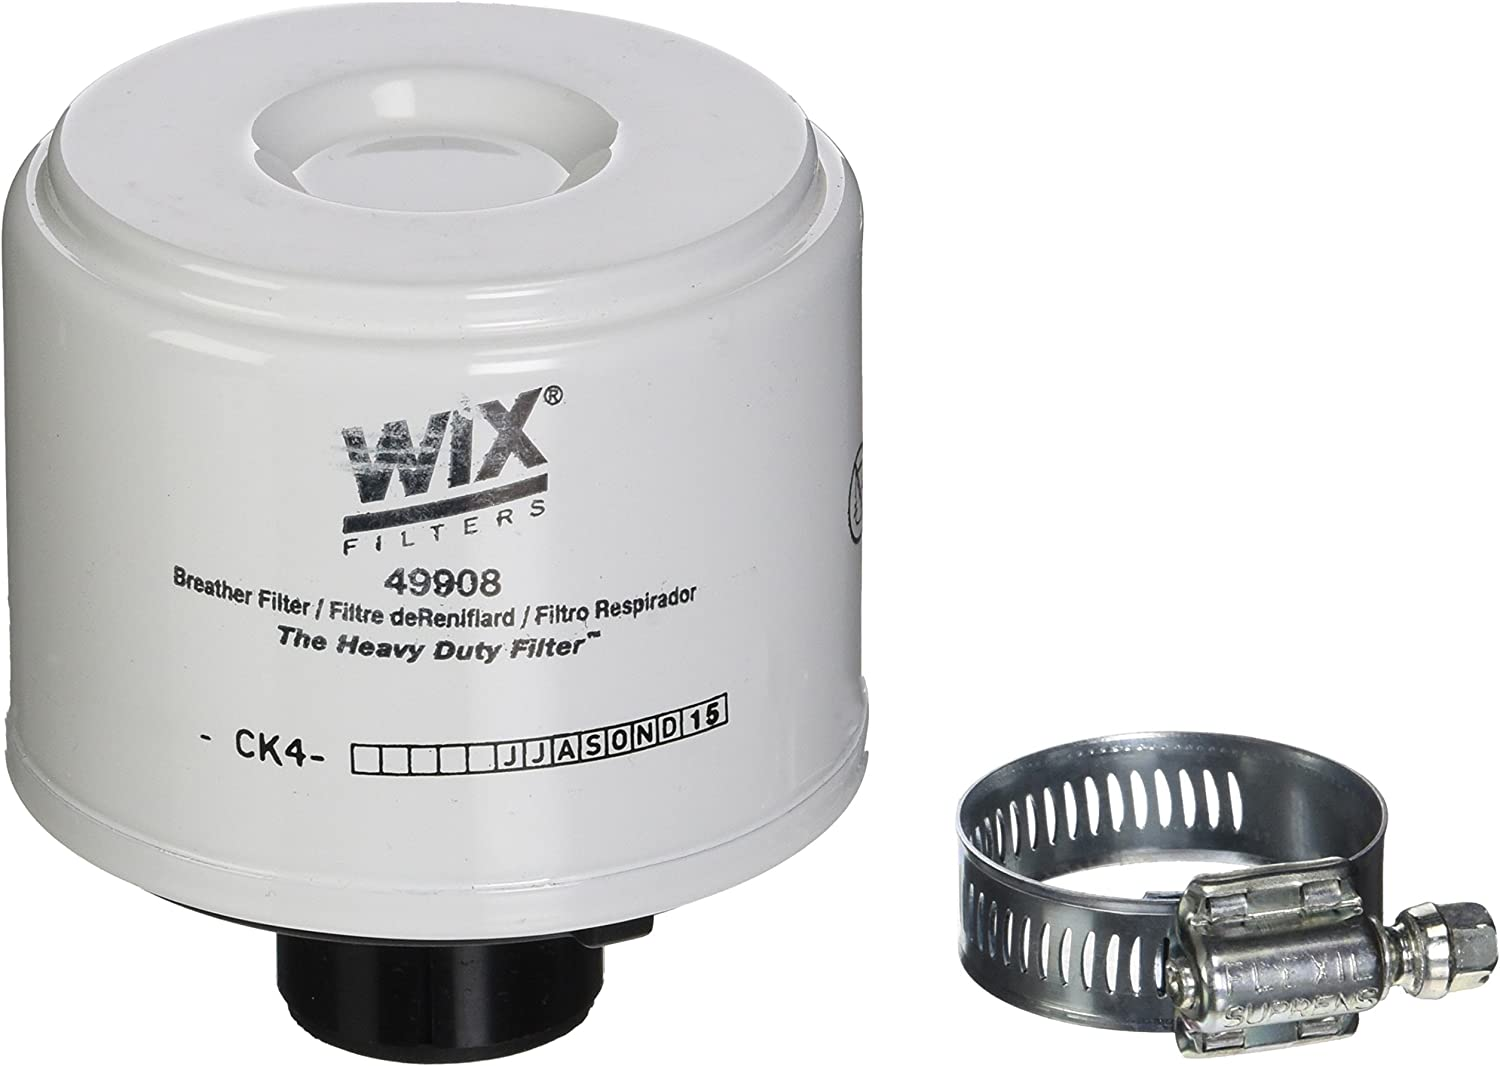 WIX Filters 49908 Heavy Duty Breather Filter Pack of 1